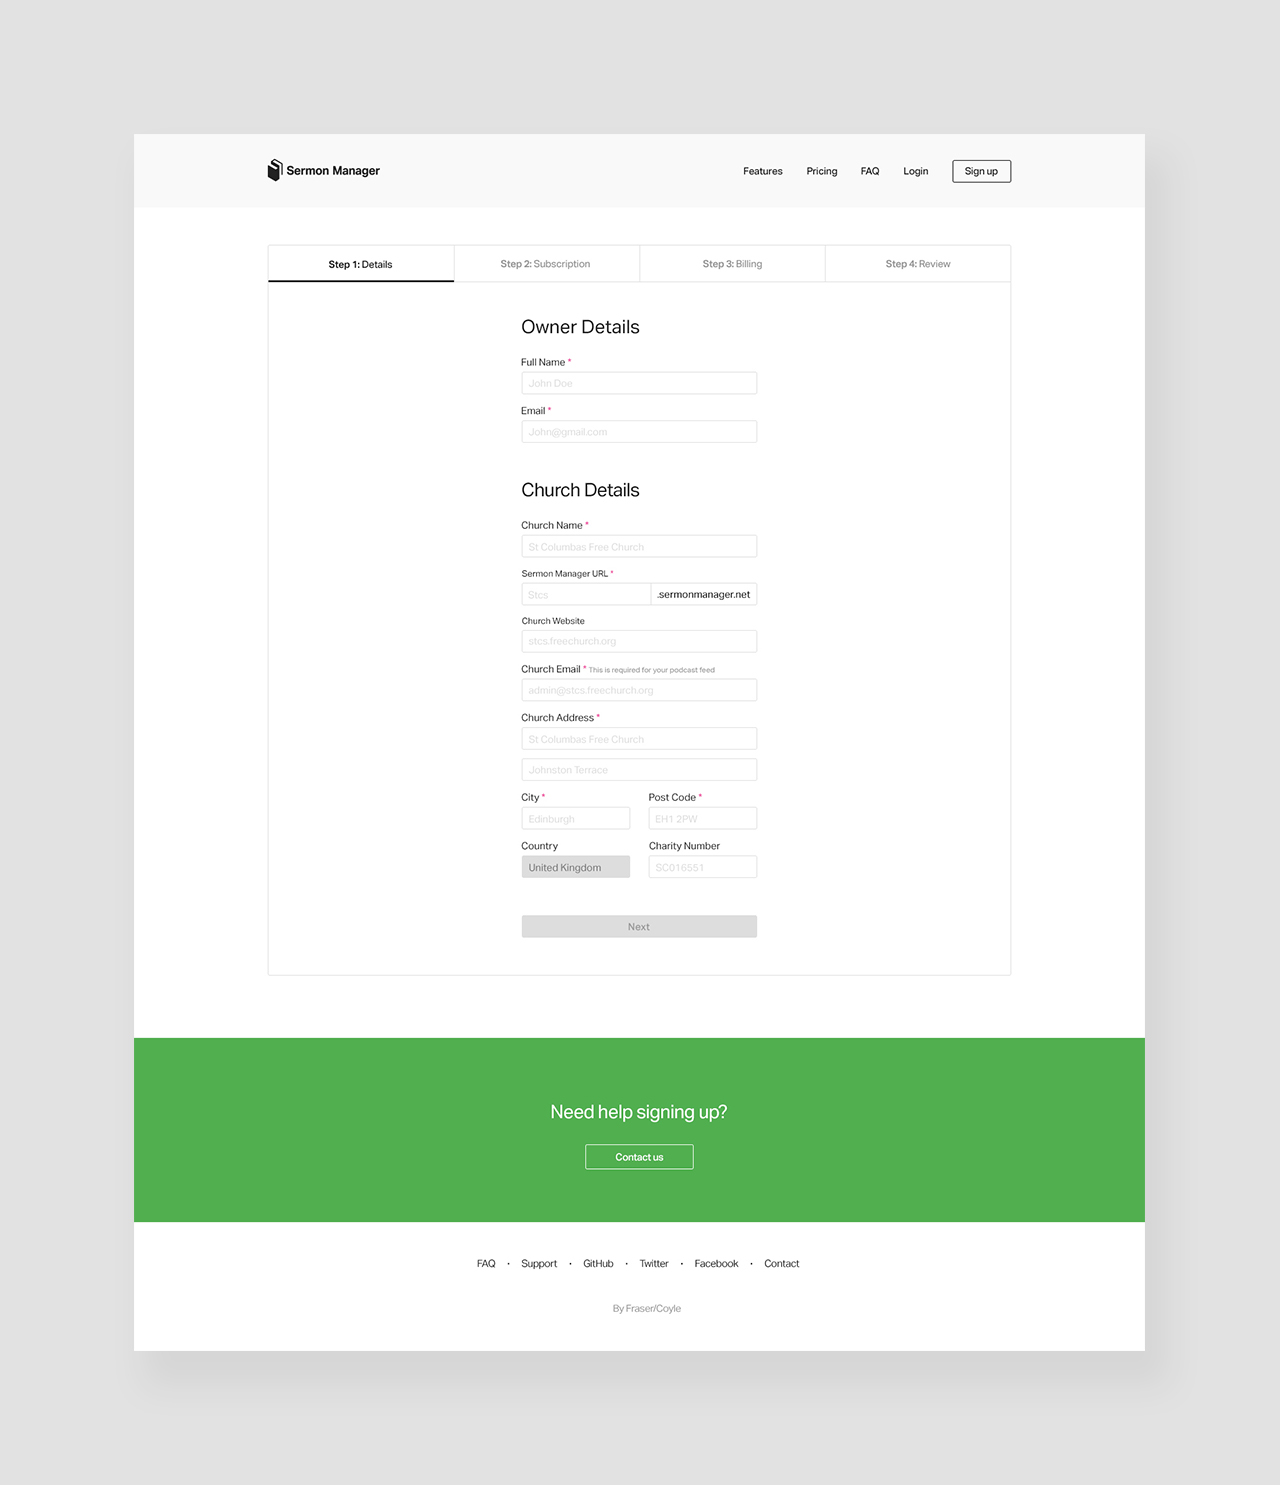 sermonmanager-mockup-website-signup-1